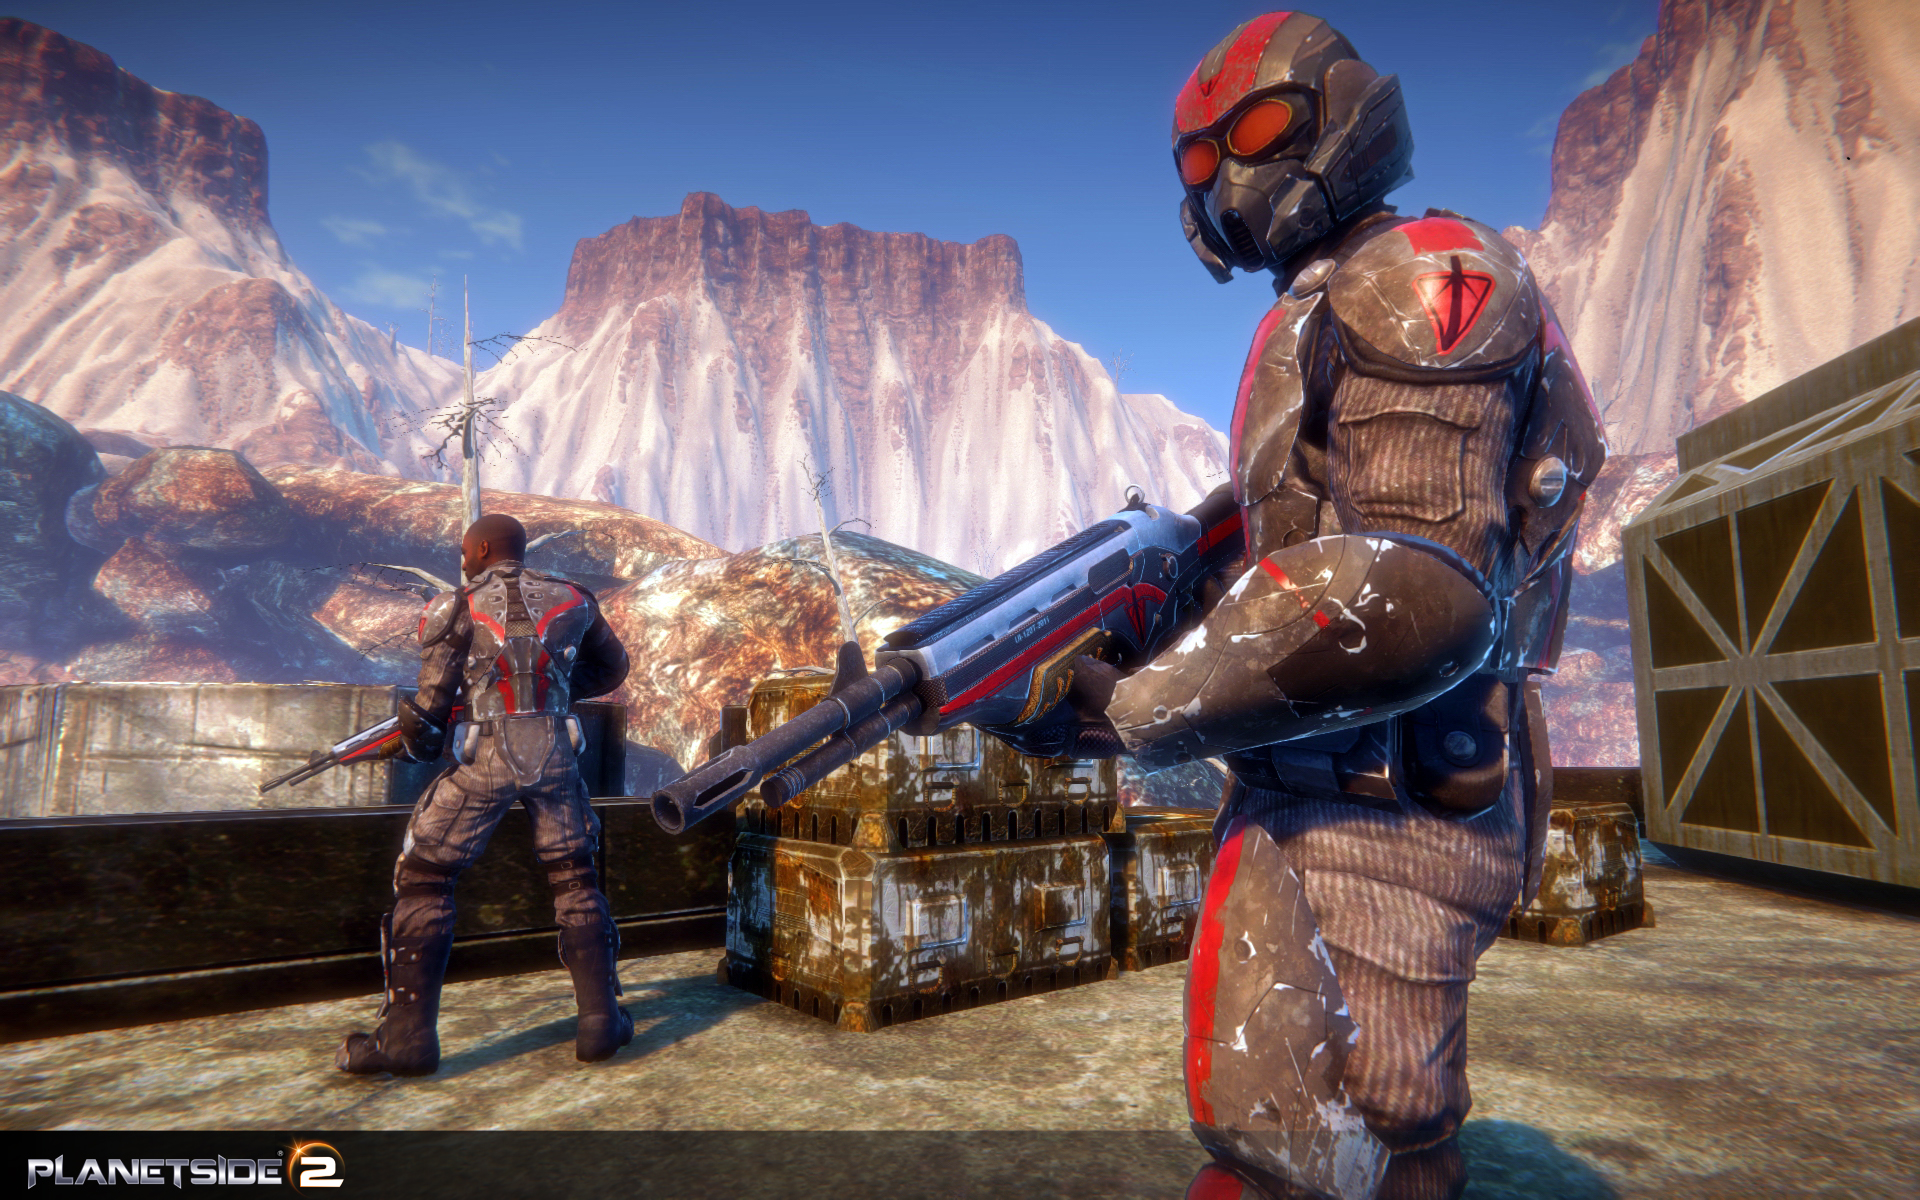 Click image for larger version.Name:Planetside 2 (2).jpgViews:287Size:1.97 MBID:9173